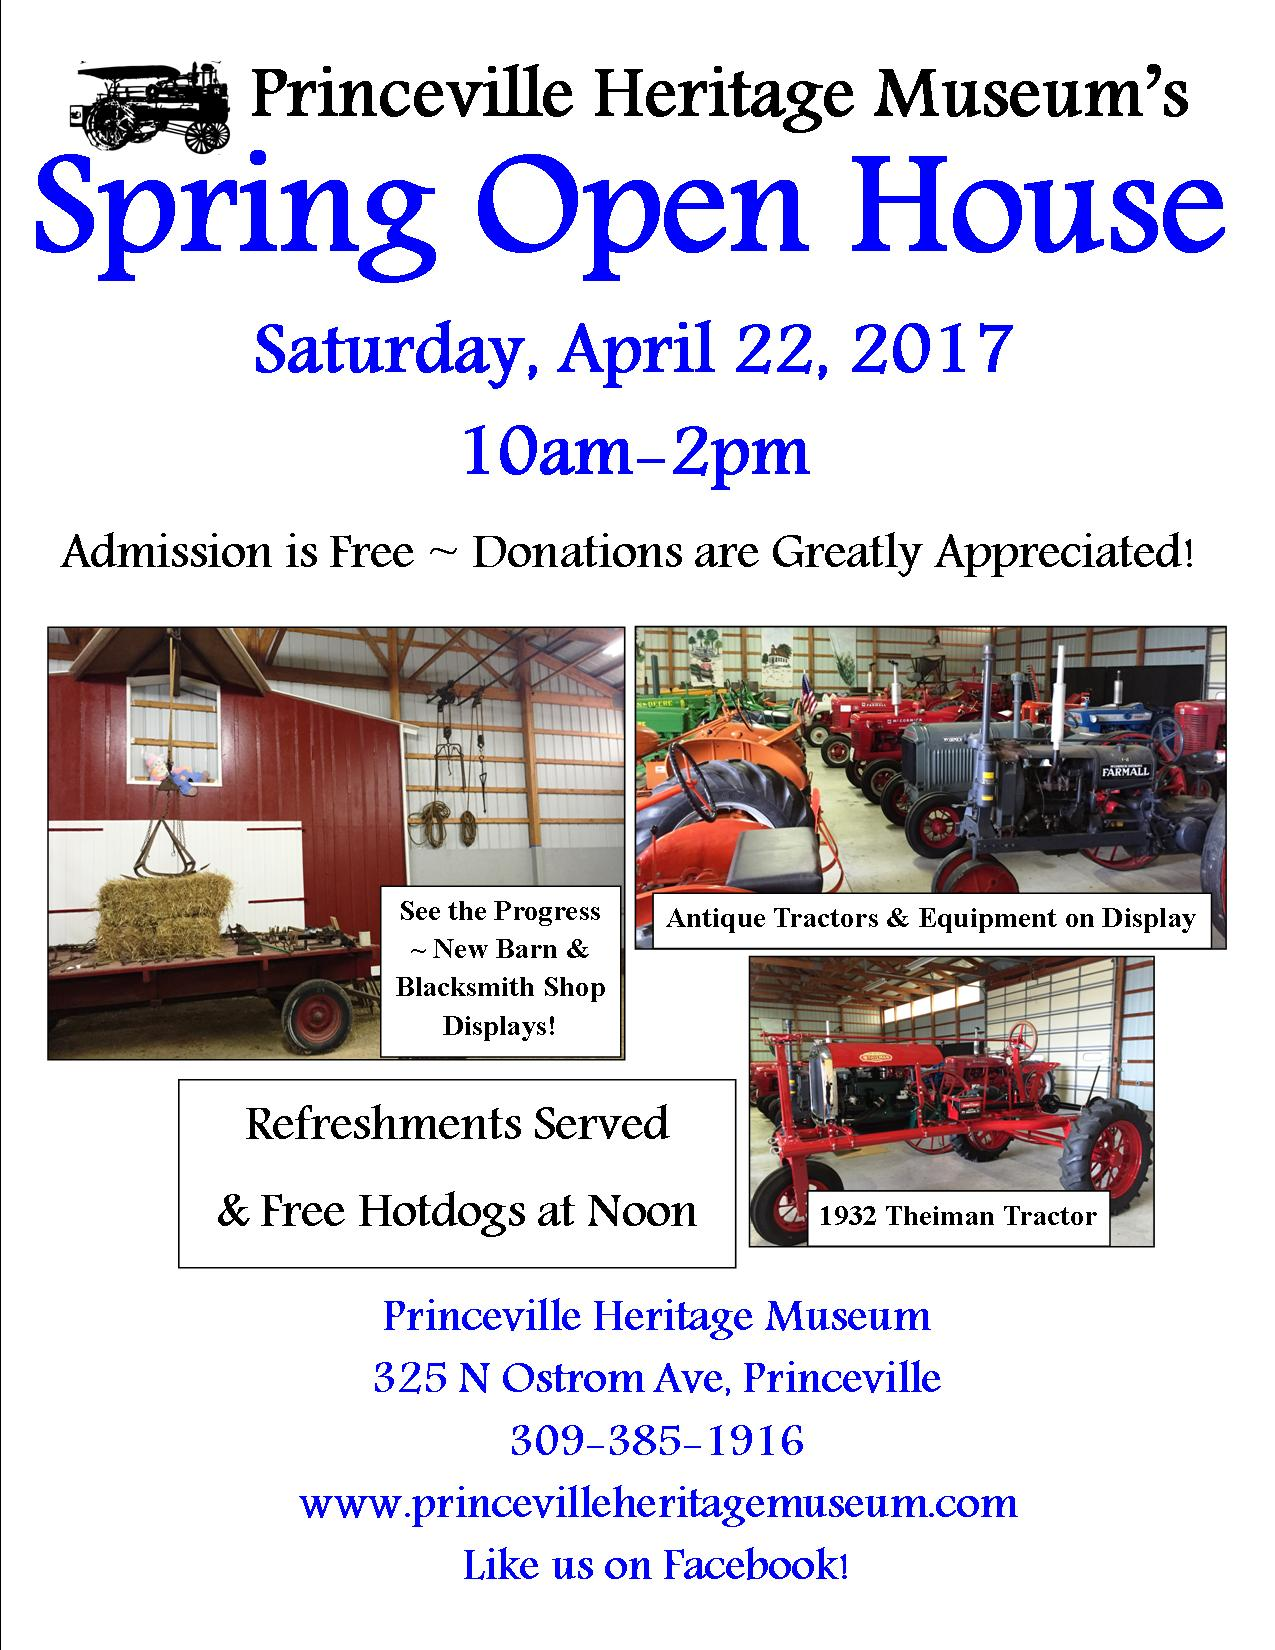 Spring Open House Sara From Sincerly Sara D: Princeville Heritage Museum Spring Open House